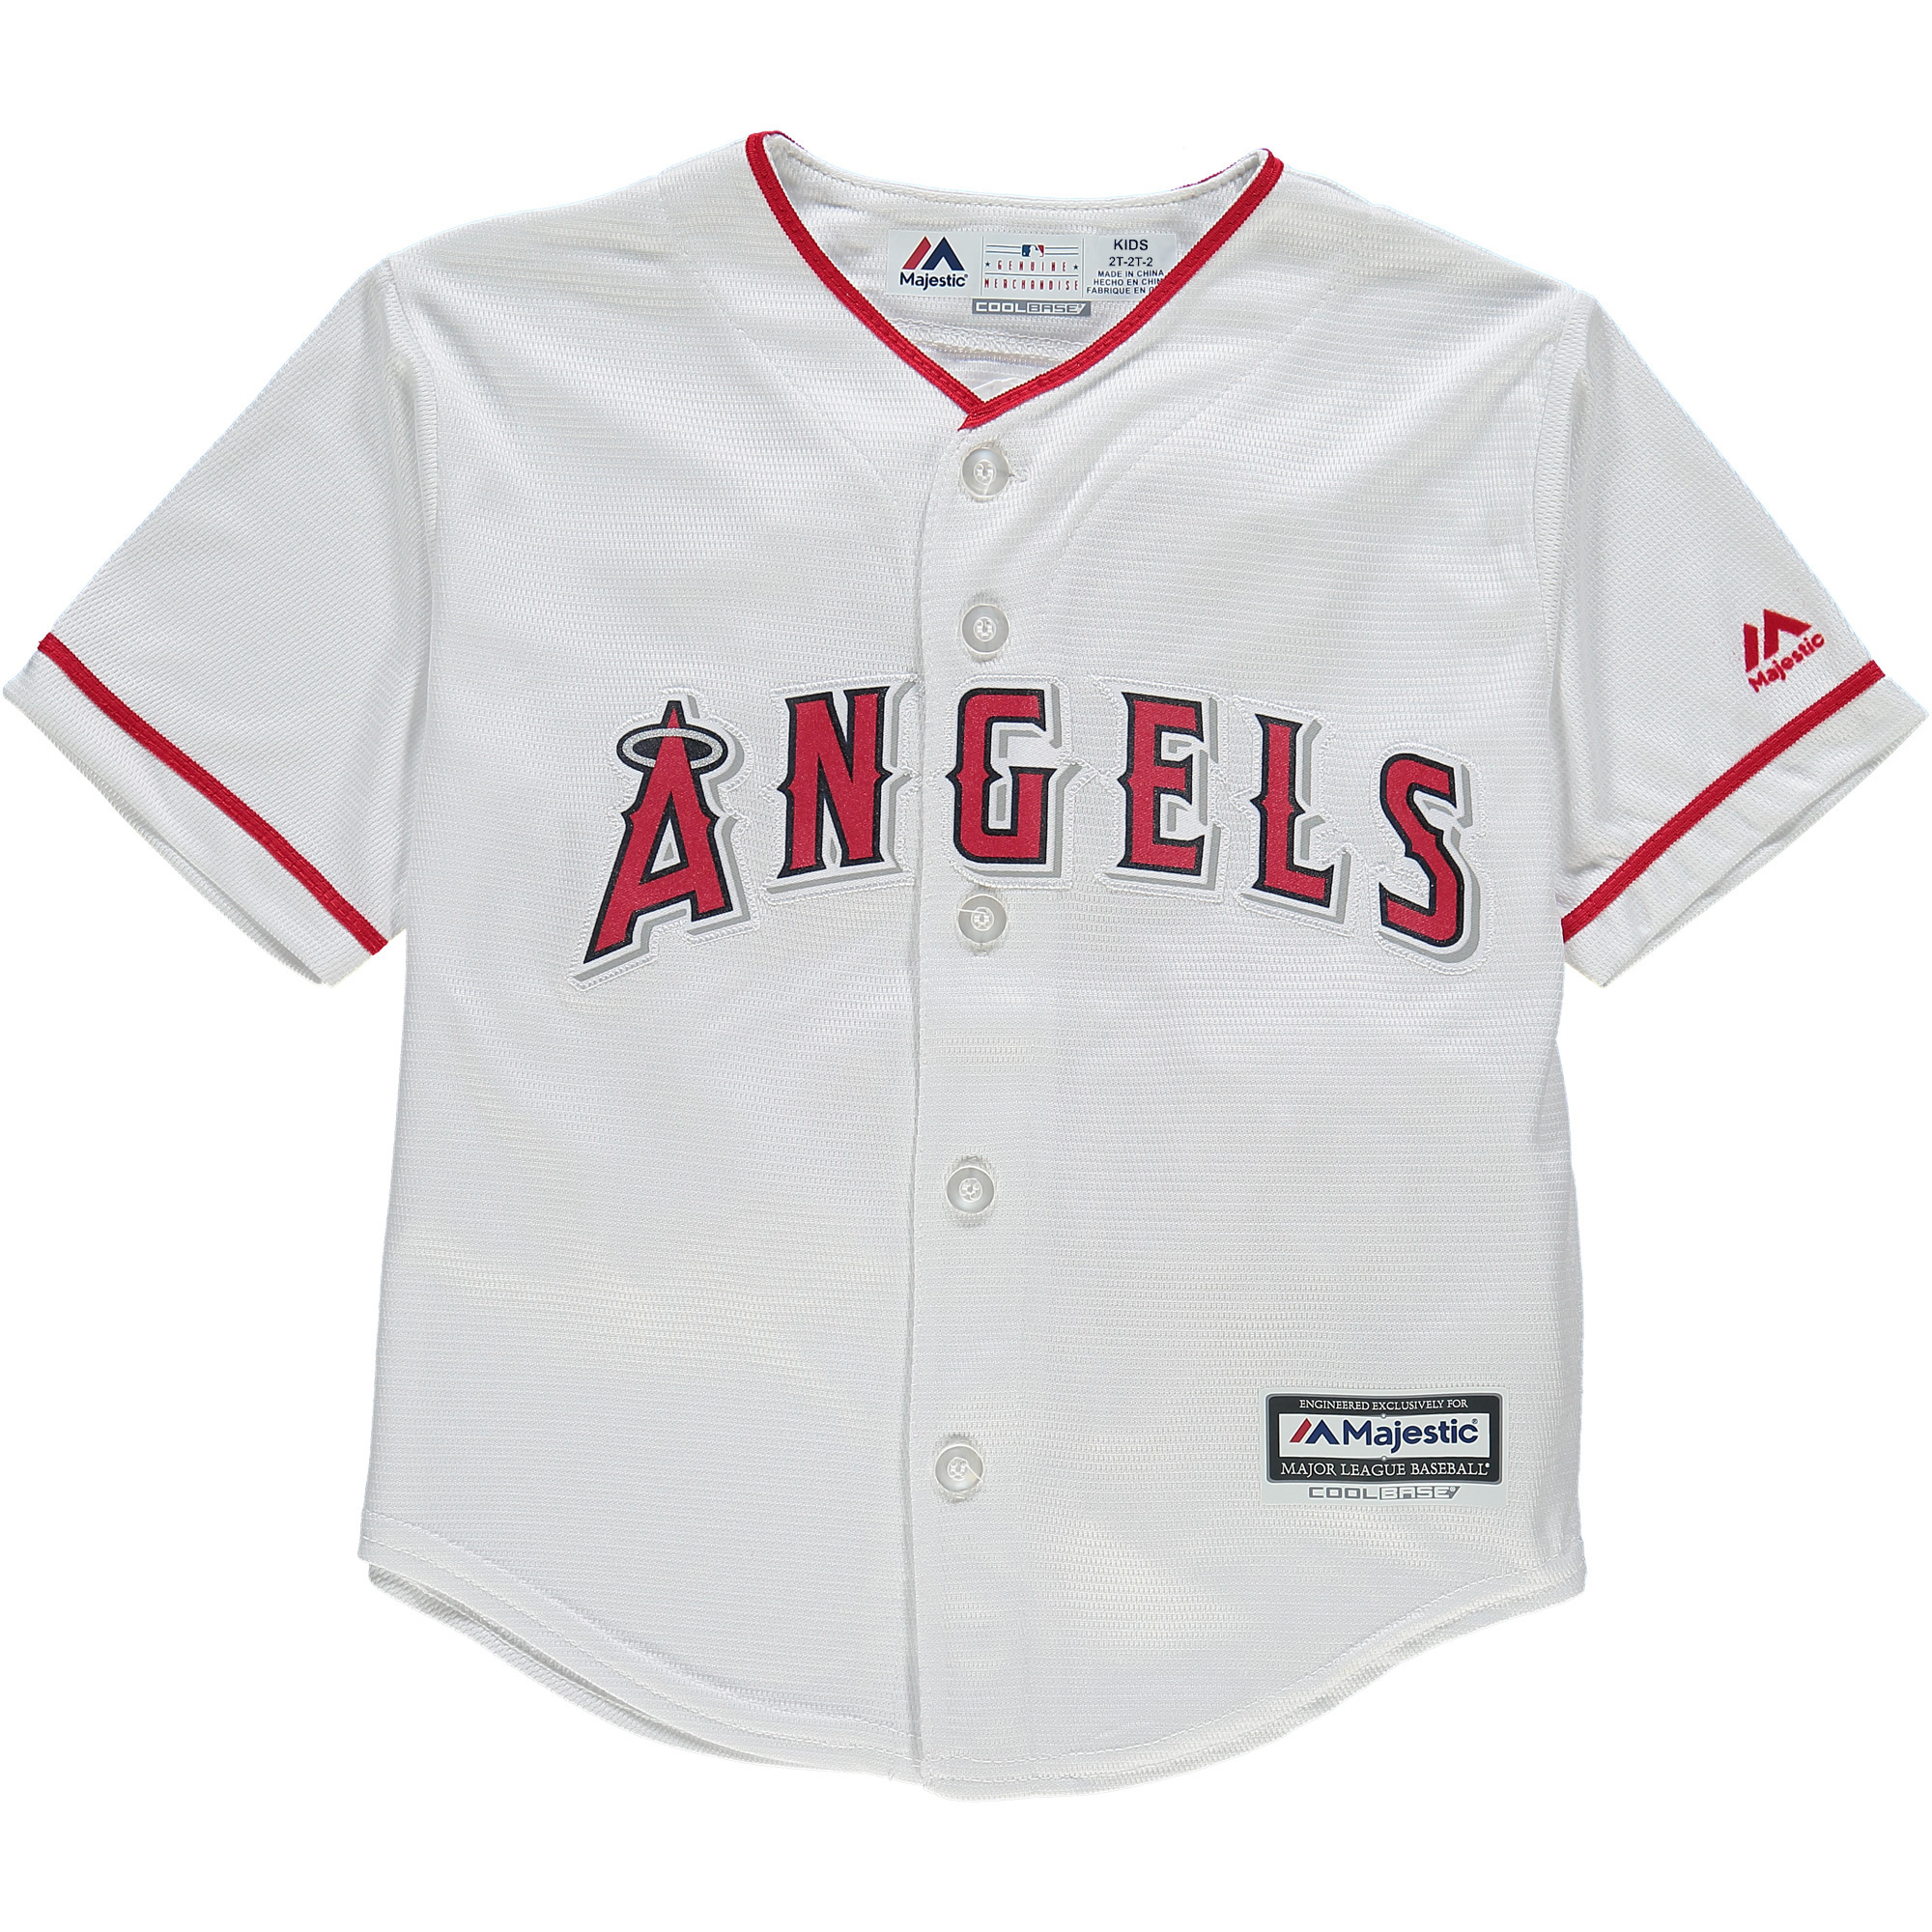 Los Angeles Angels Majestic Toddler Official Cool Base Jersey - White